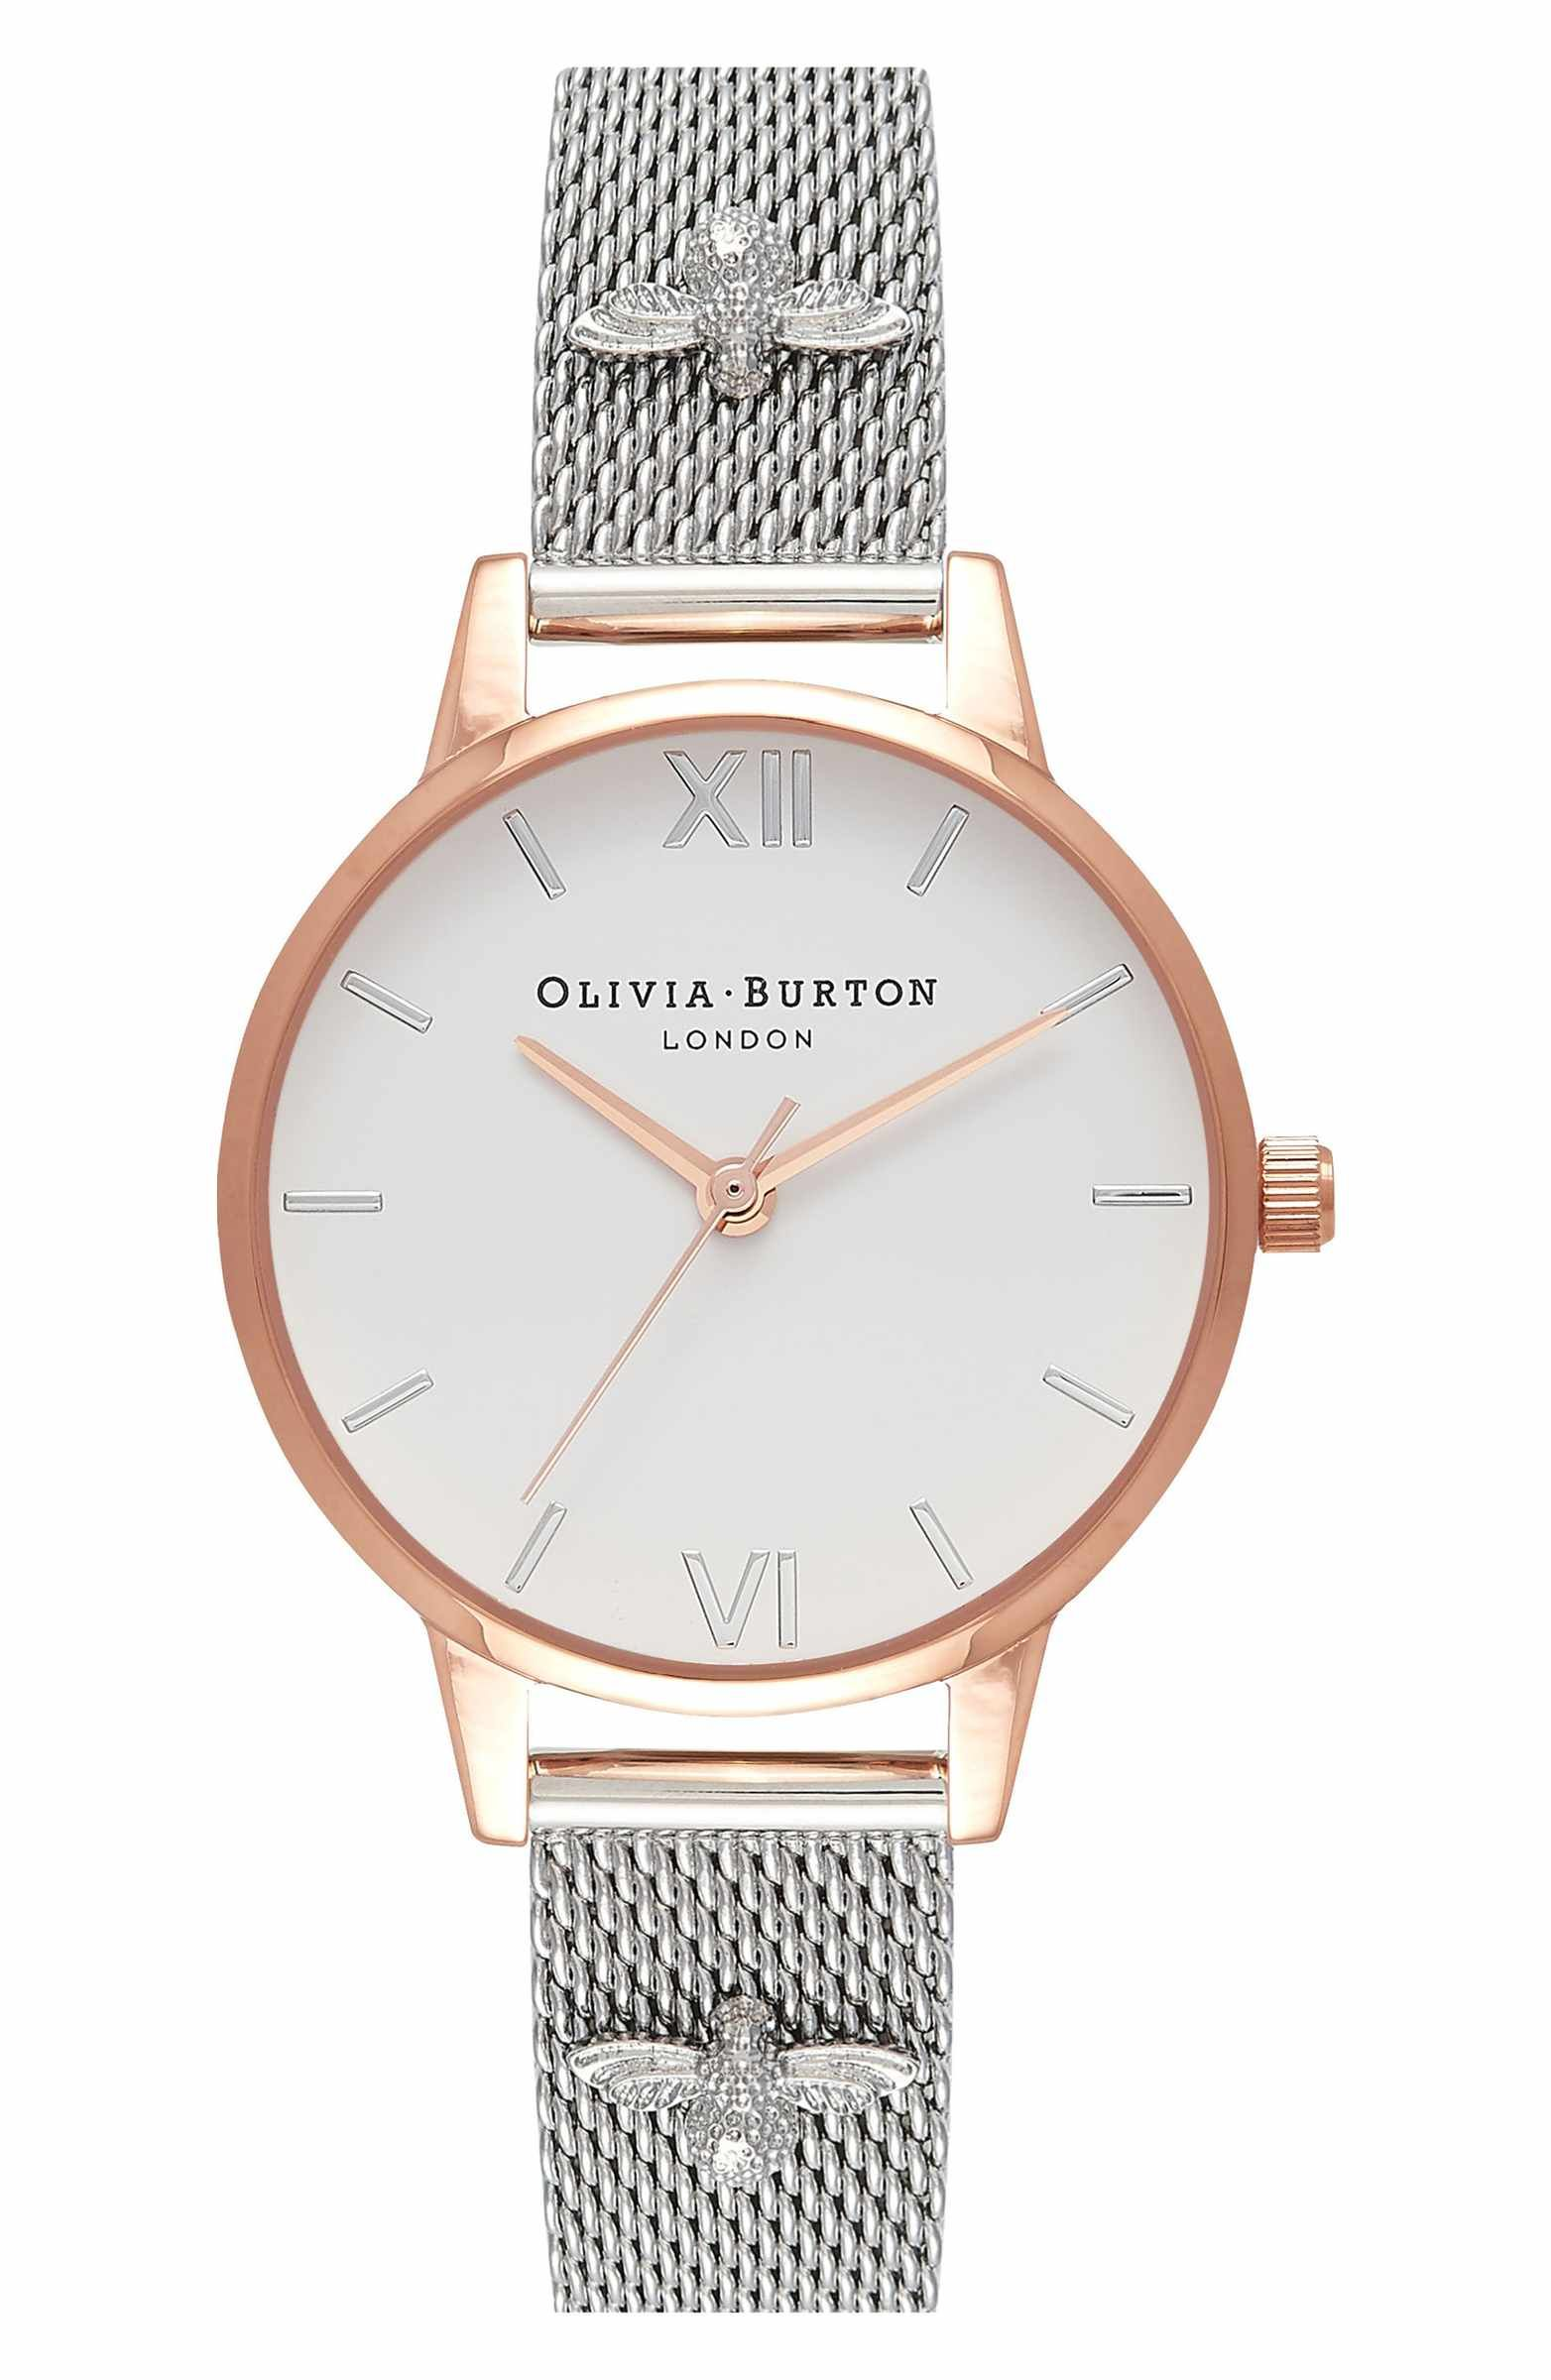 burton olivia shopping jewel watch bee mesh strap and pin watches